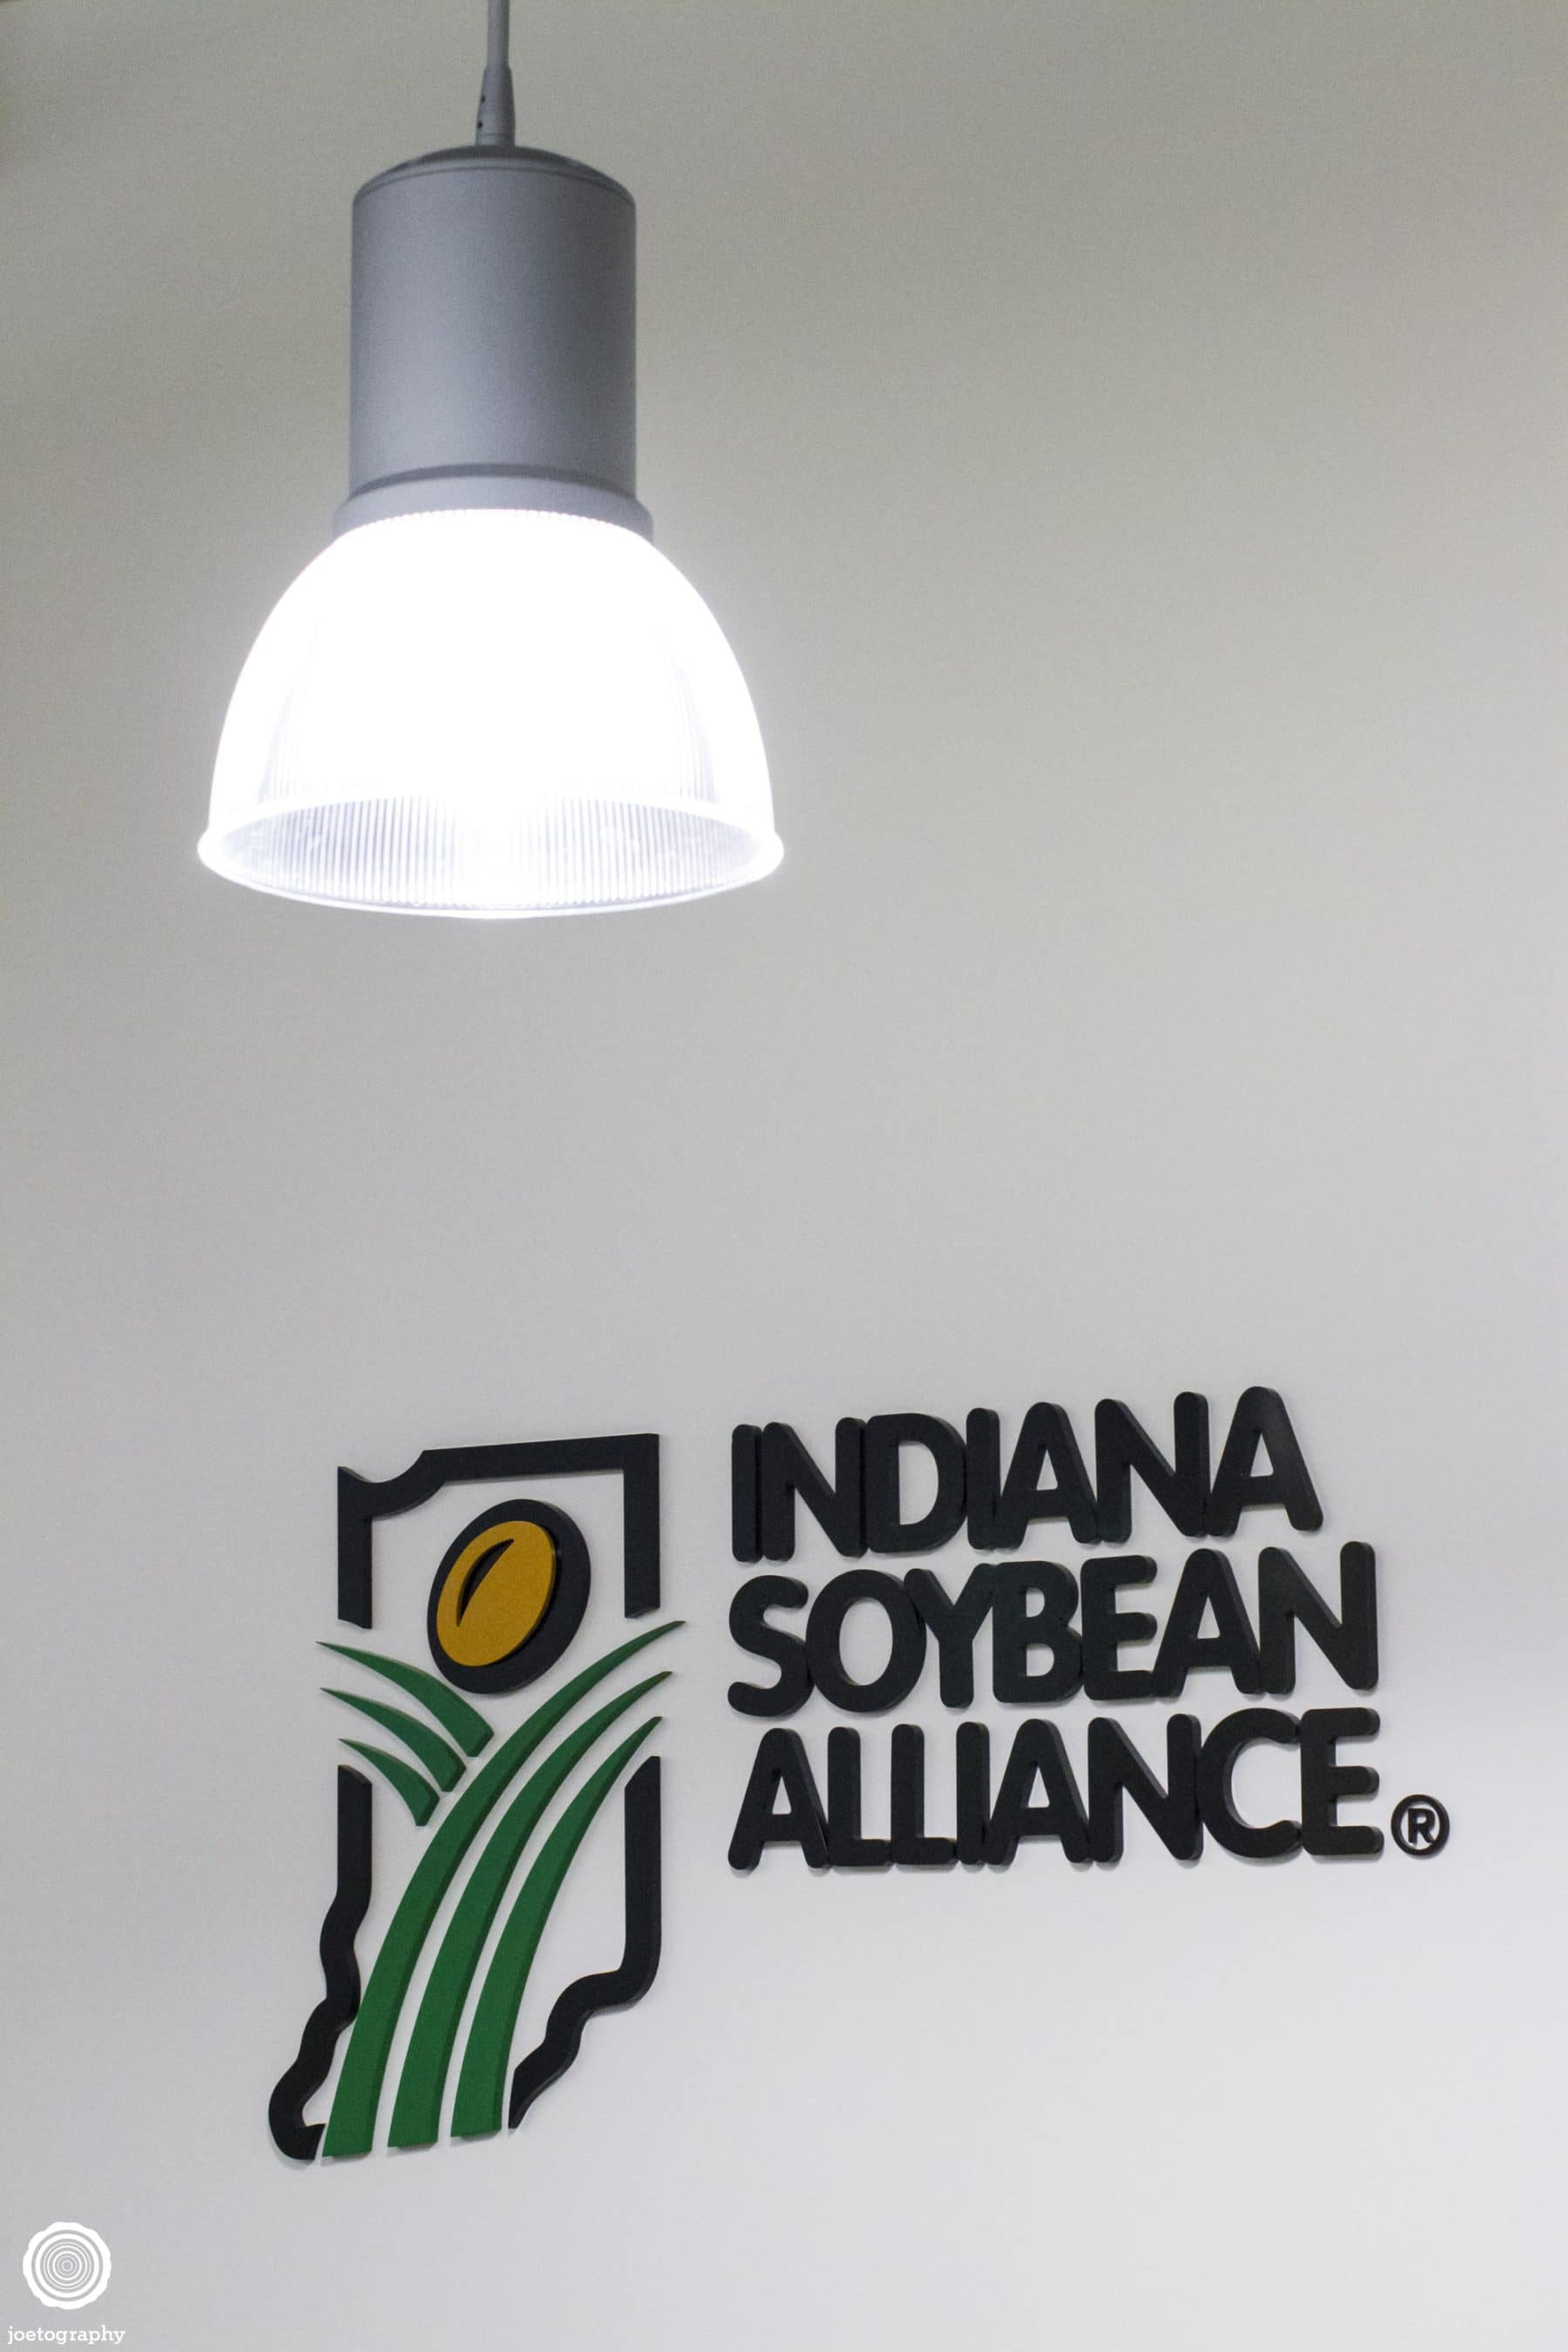 lauth-group-indiana-soybean-alliance-indianapolis-27